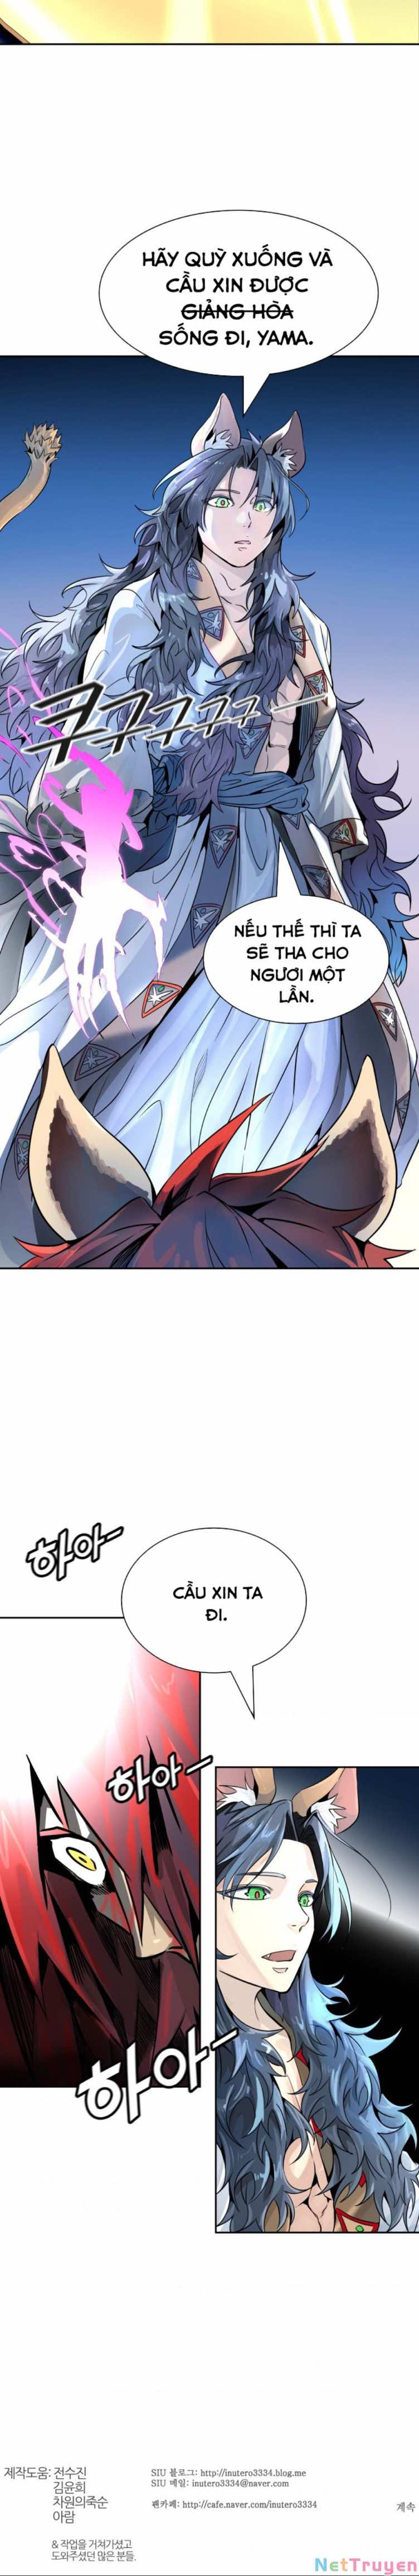 Tower Of God 492